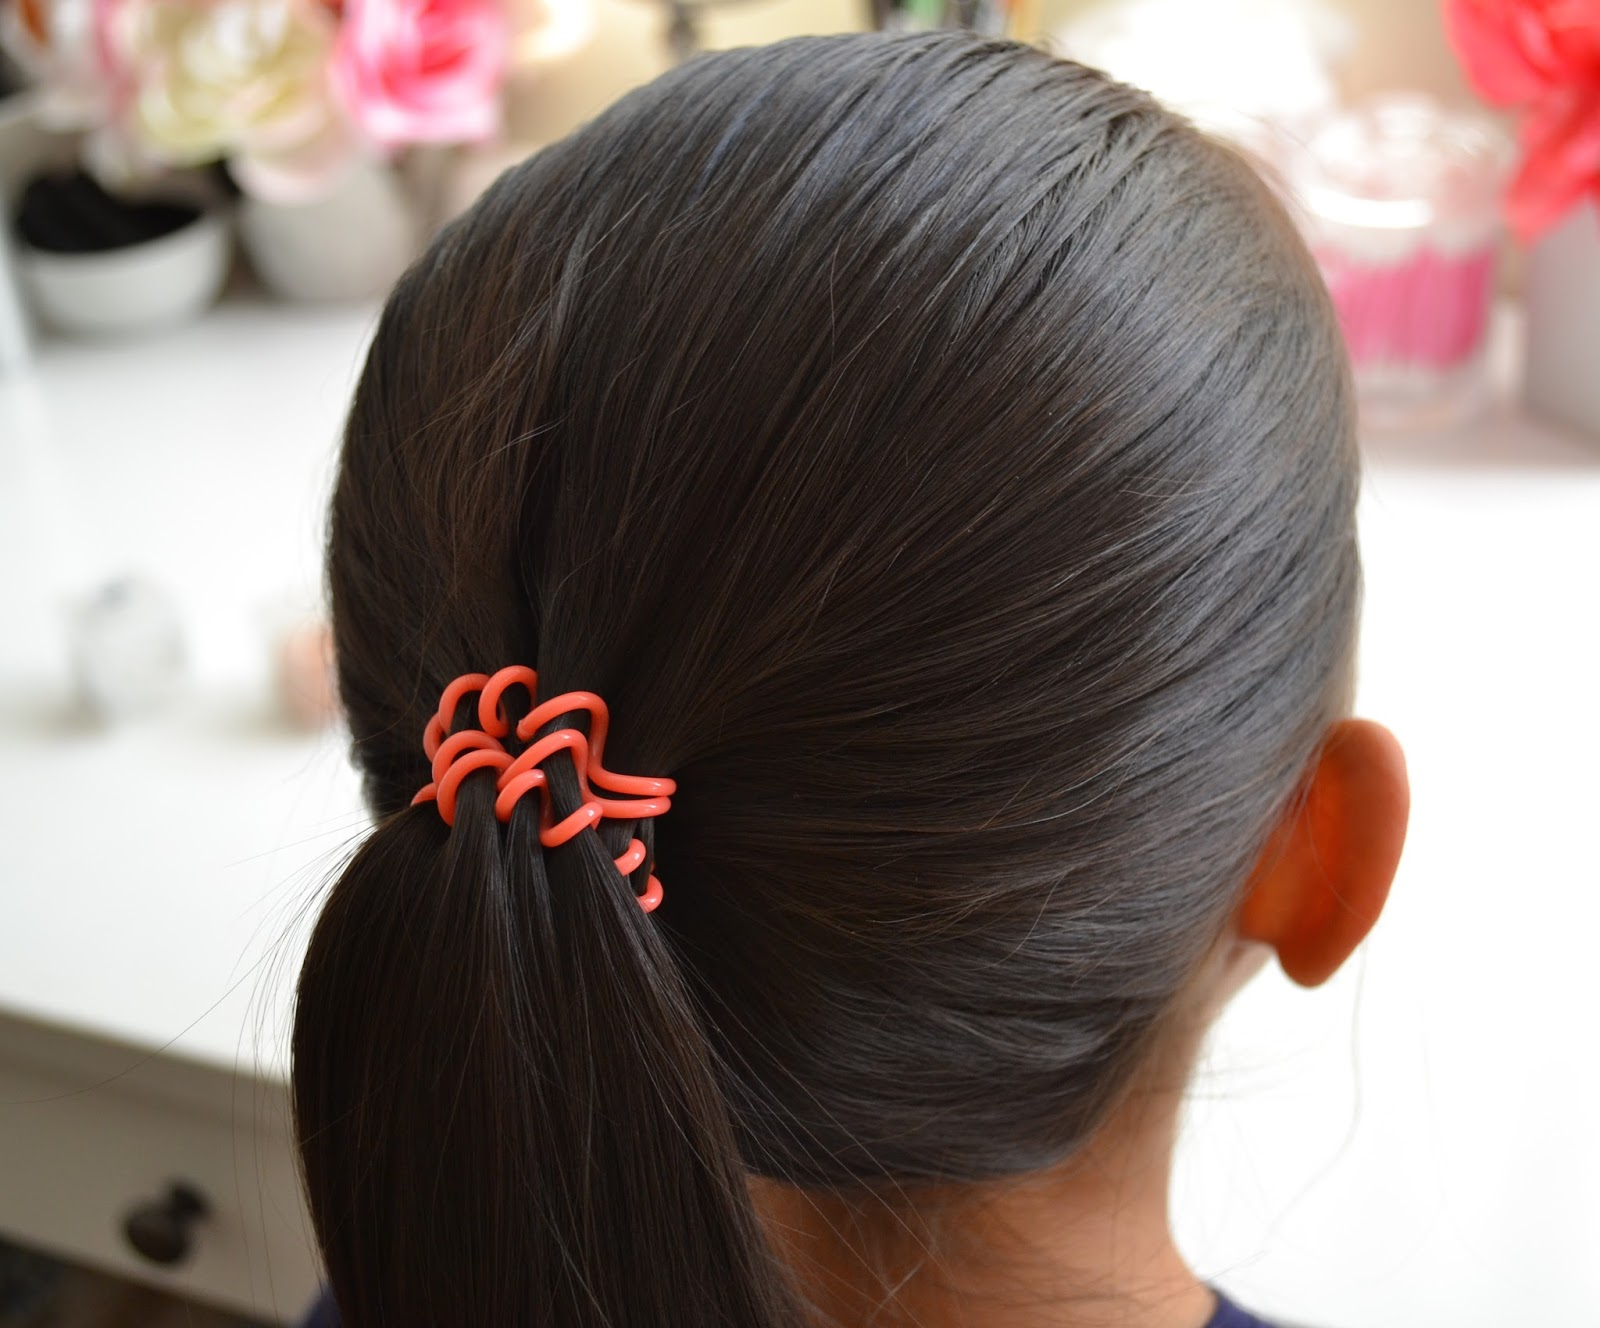 Ponytail without hair band - Both My Daughter And I Have Really Thick Hair And I Ve Dealt With Ponytail Bands Breaking And Clips Snapping In Order To Get Our Hair Back And Out Of The